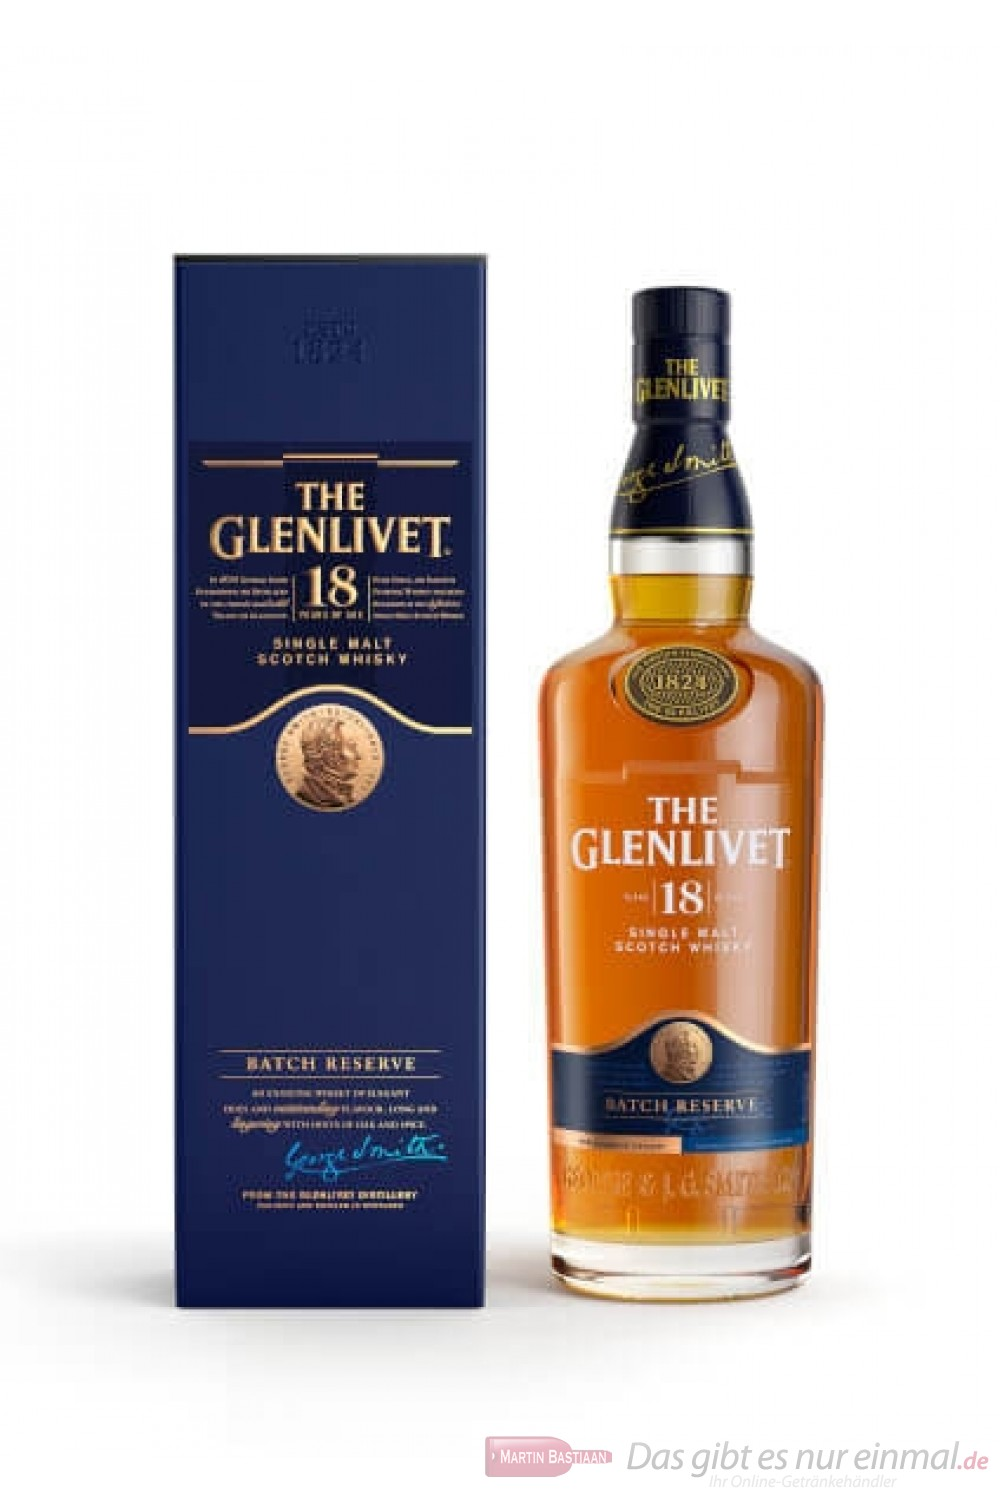 The Glenlivet 18 years New Design